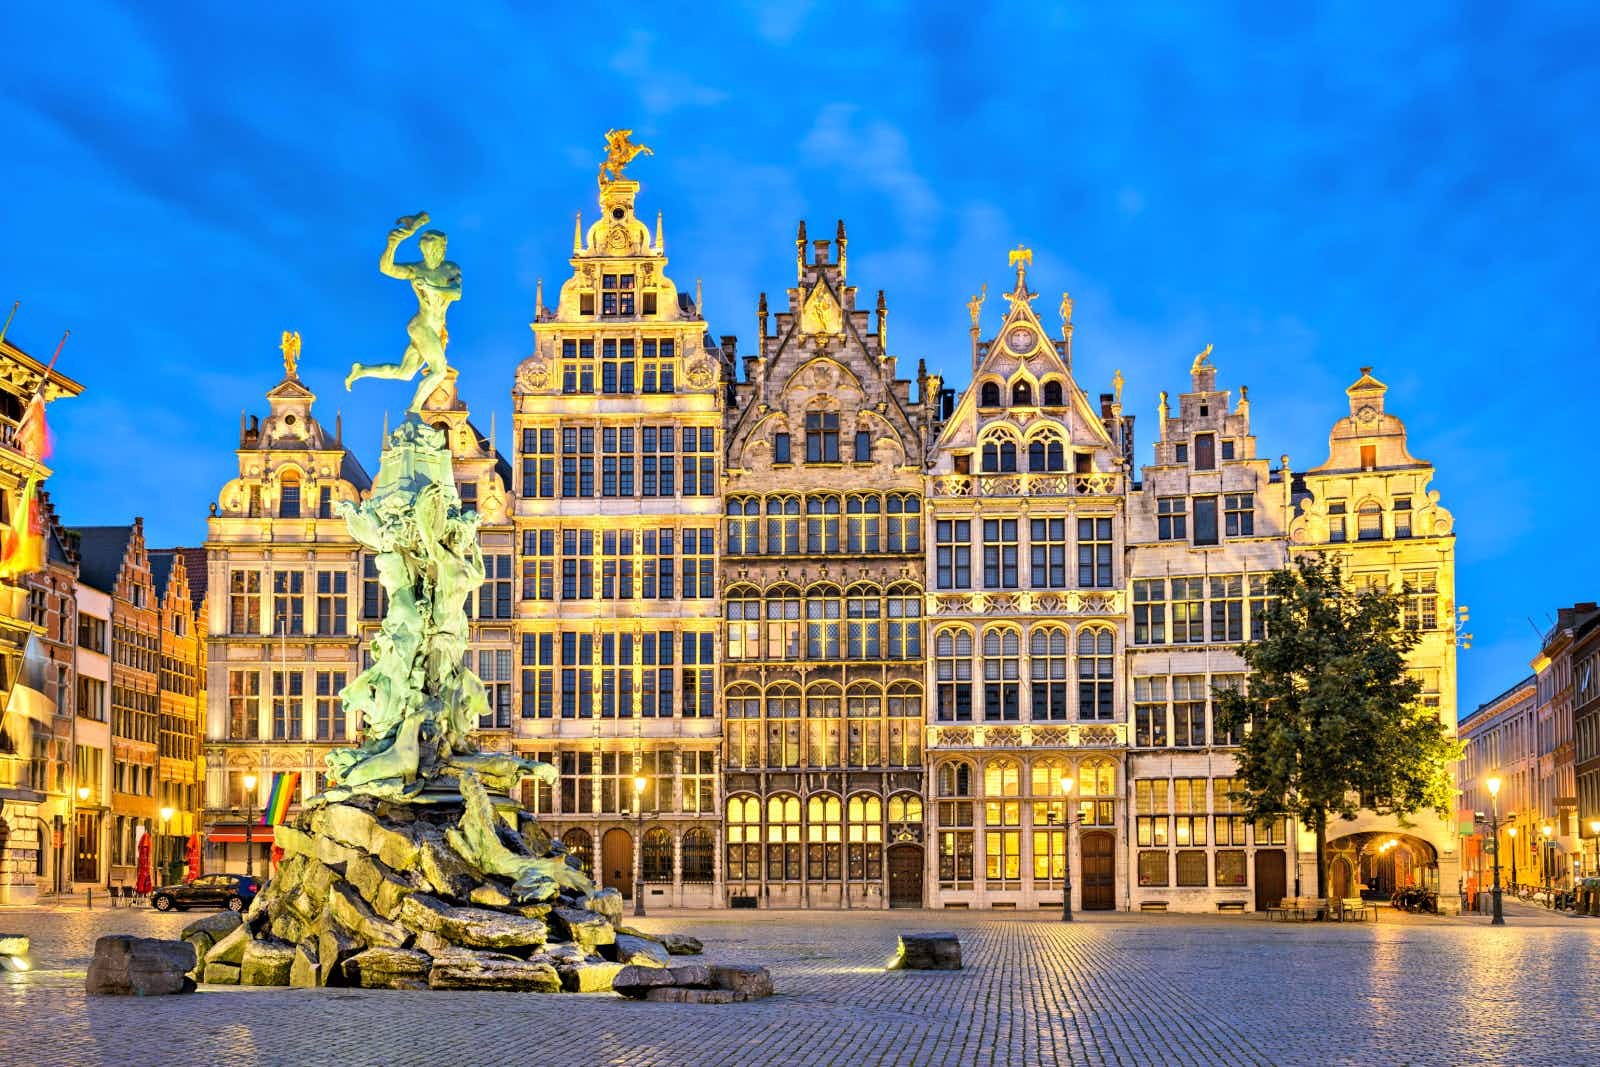 Is Antwerp the most continuously cool city on Earth?